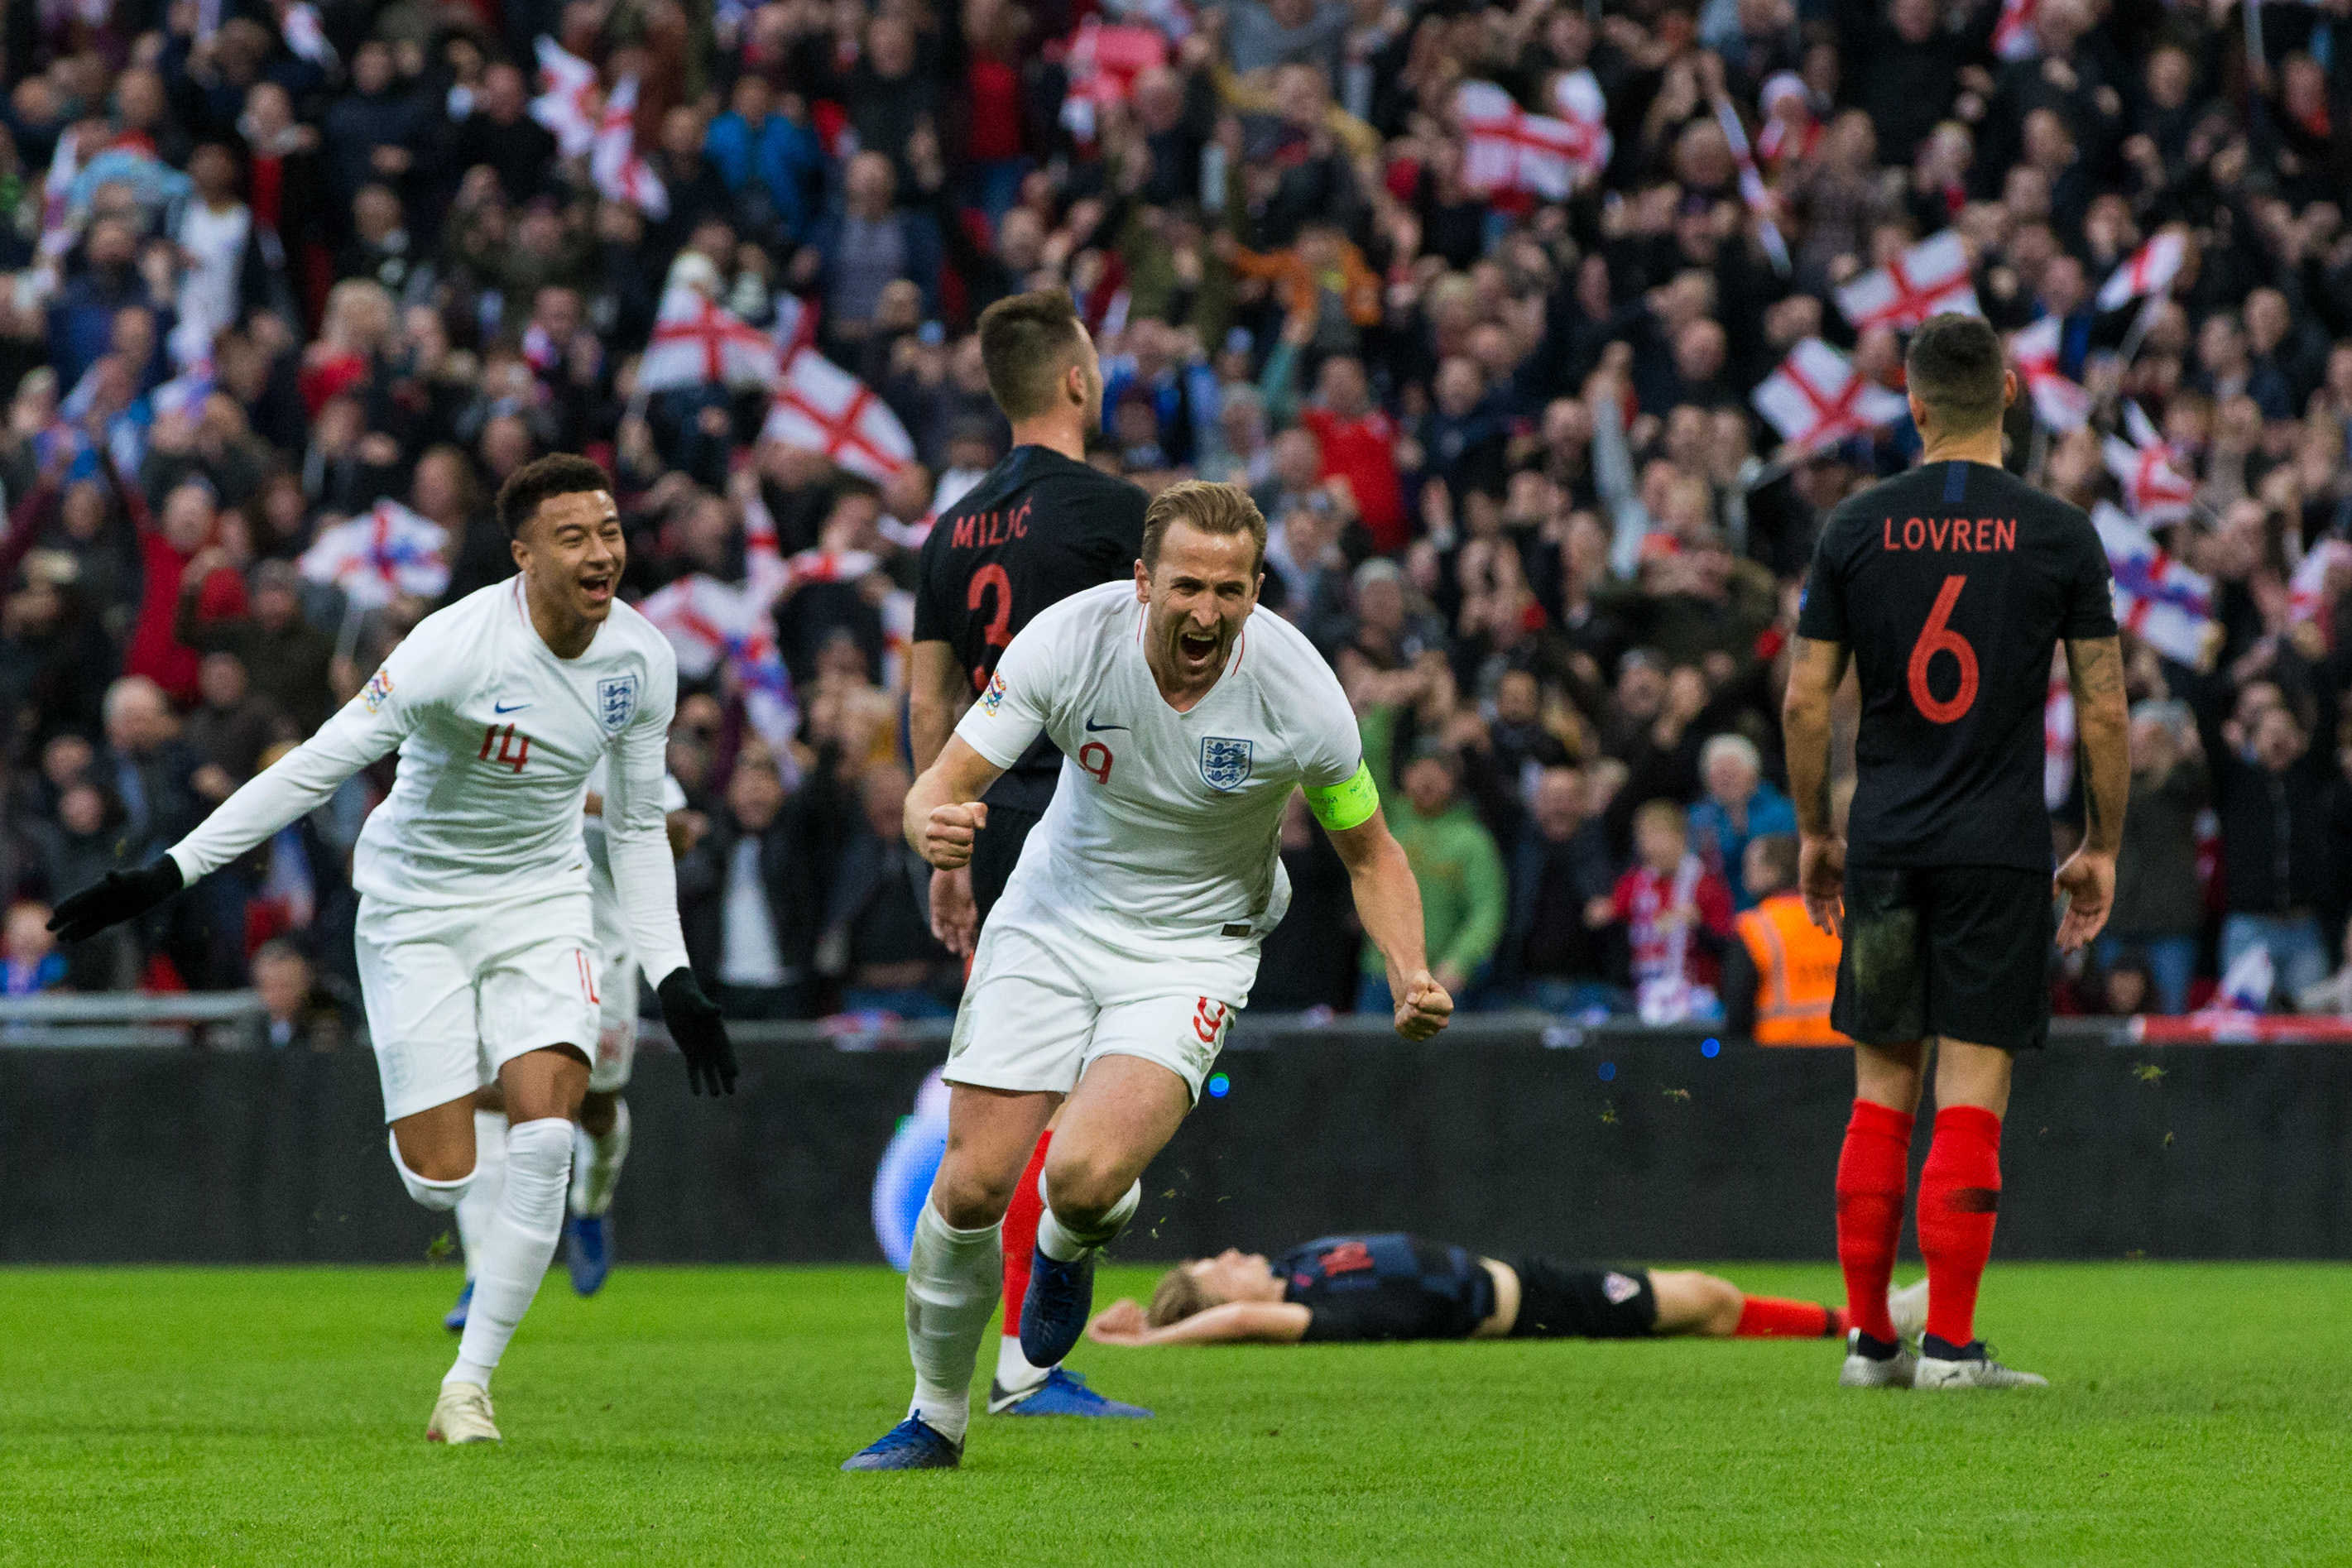 Nations League Semi-Final: Netherlands vs. England Preview and Betting Tips